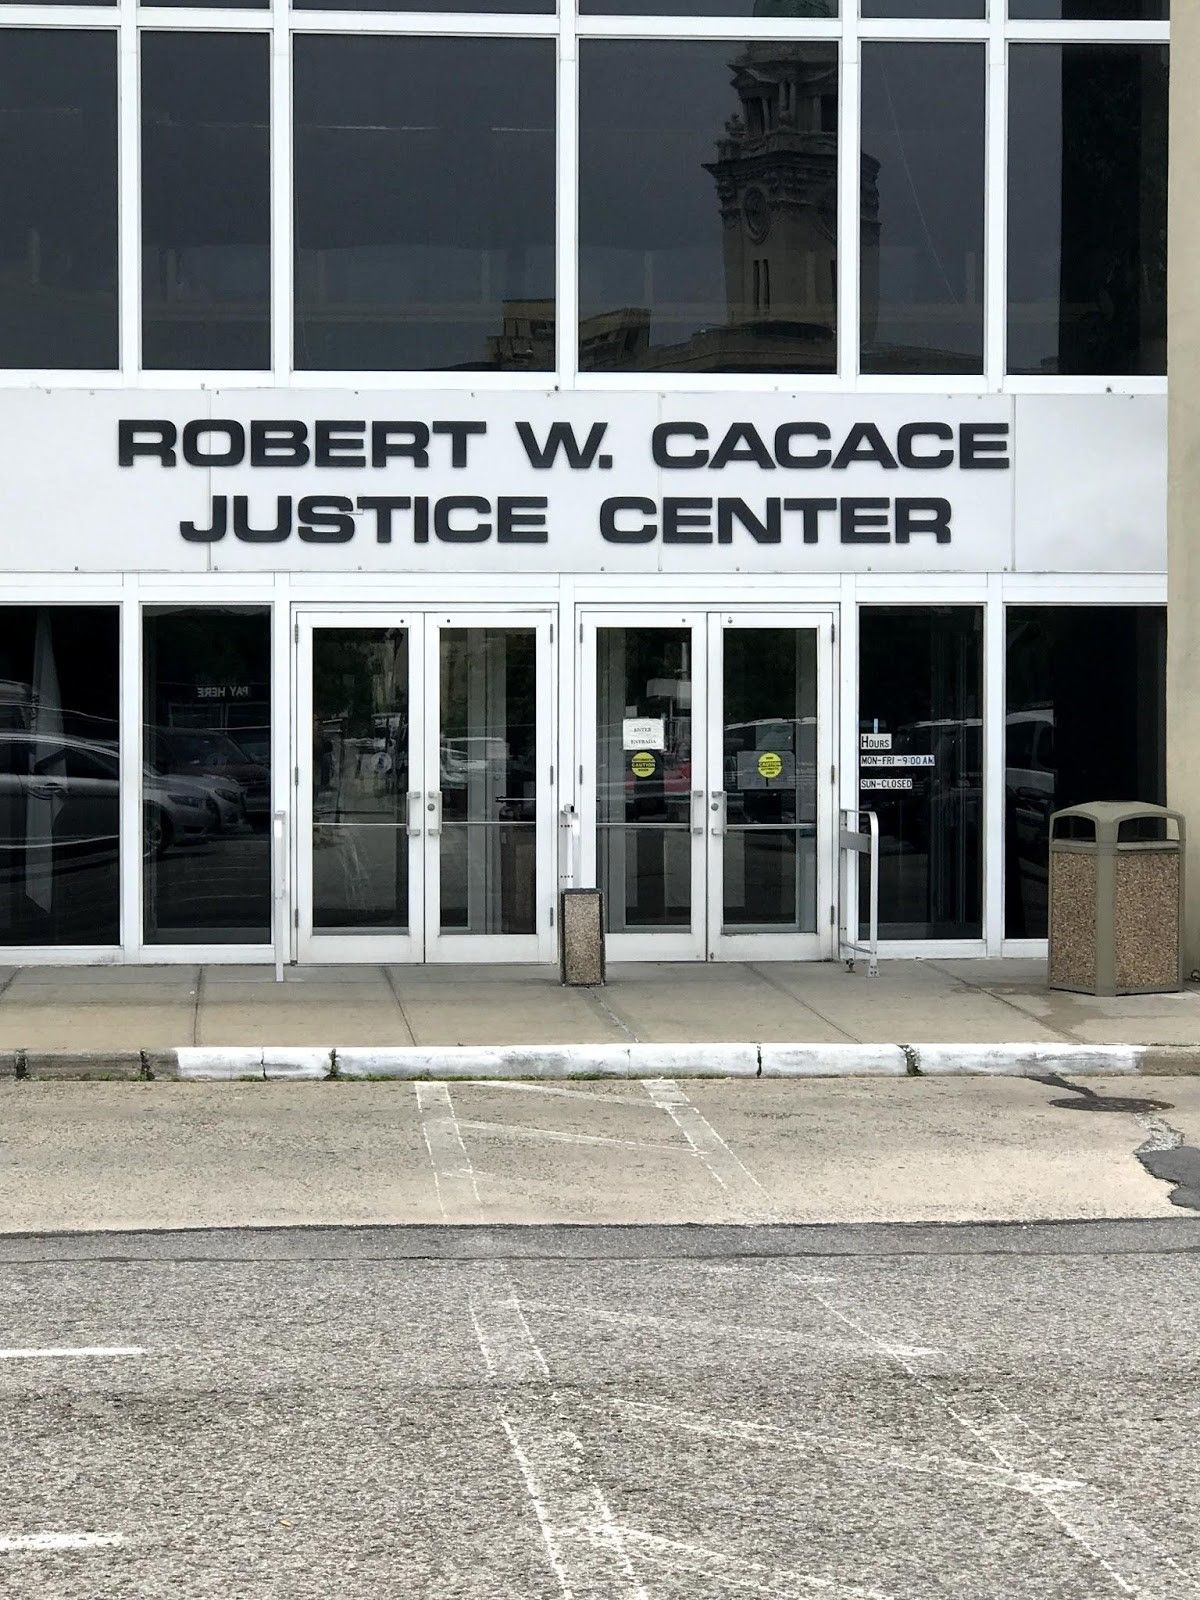 Robert W. Cacace Justice Center